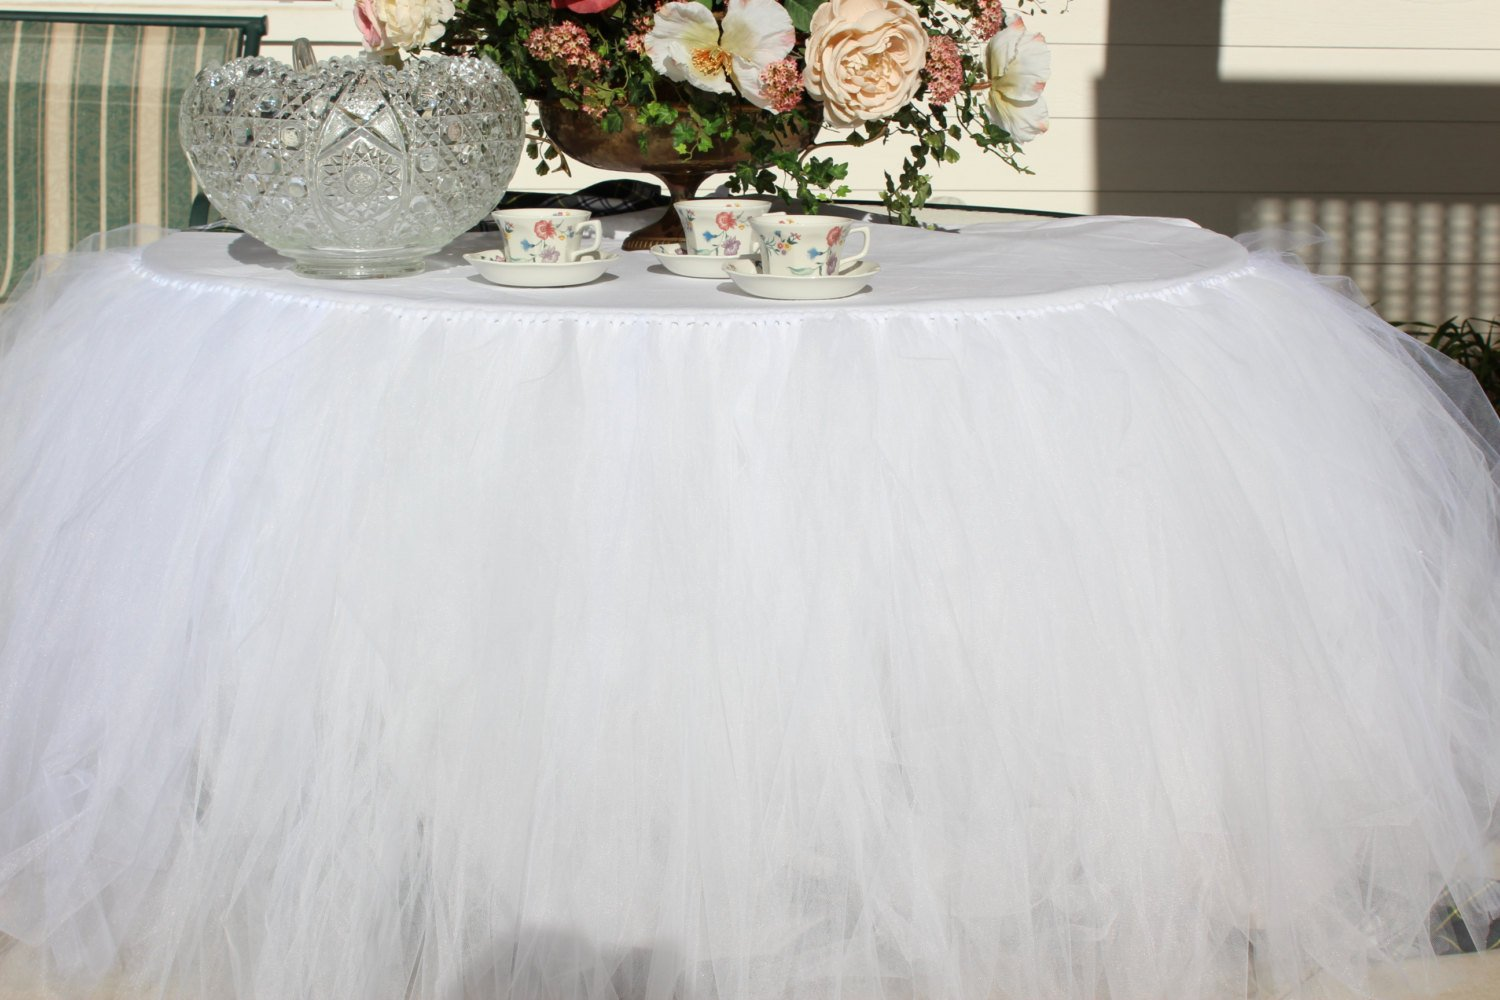 Handmade TUTU Table Skirt Tulle Tableware for Baby Shower Birthday Party Wedding Even Cake Table Girl Princess Decoration(White)